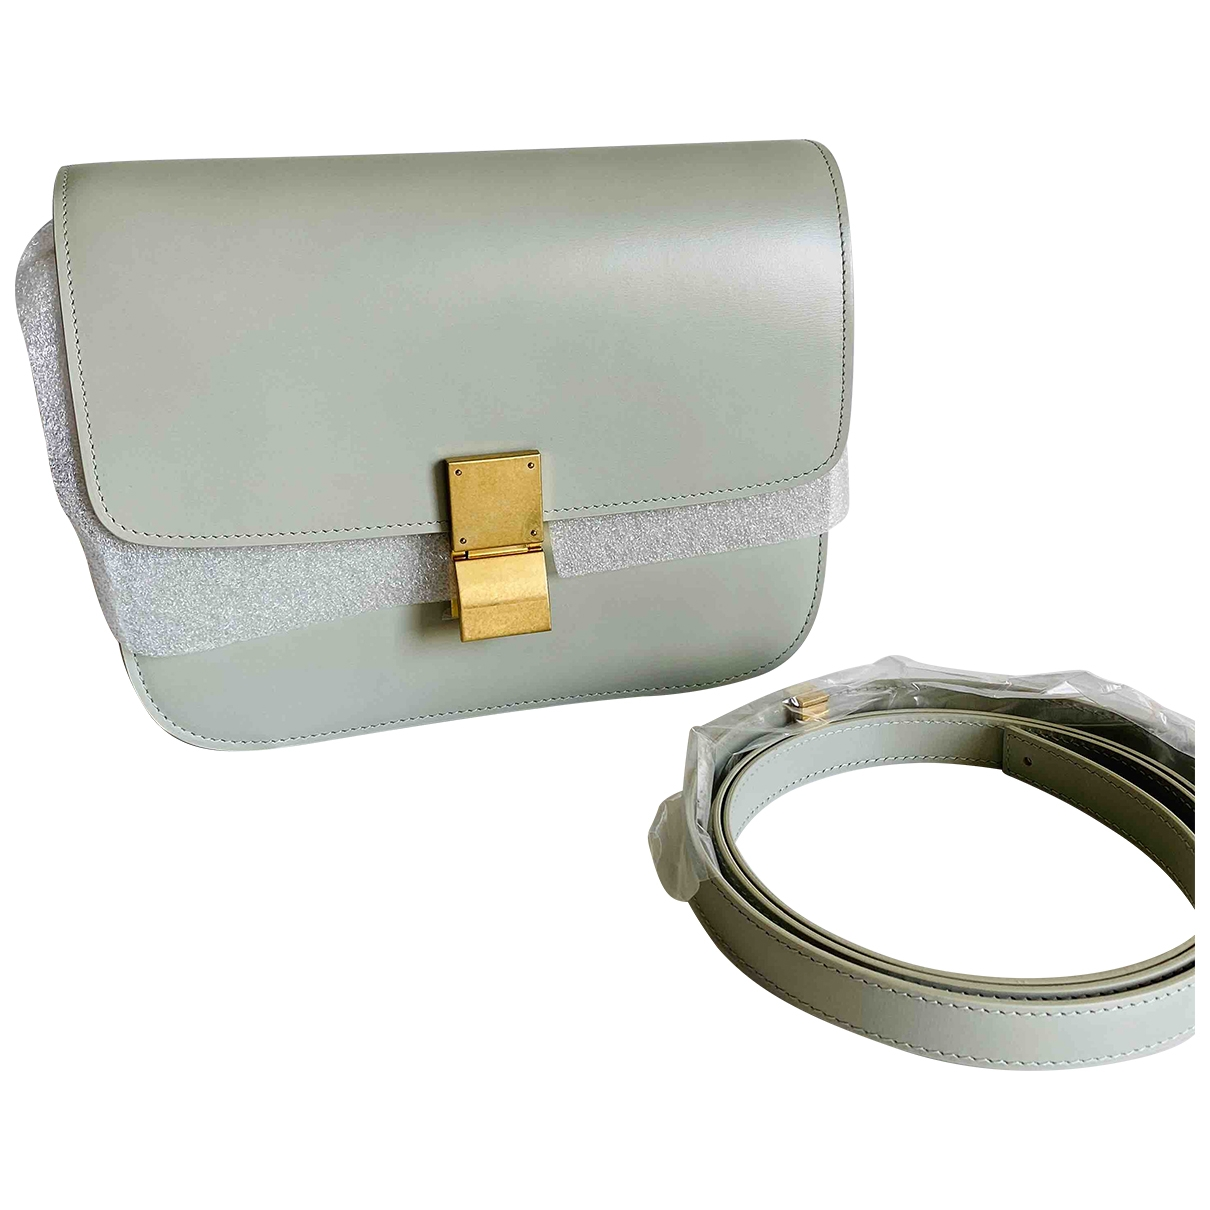 Celine \N Leather handbag for Women \N